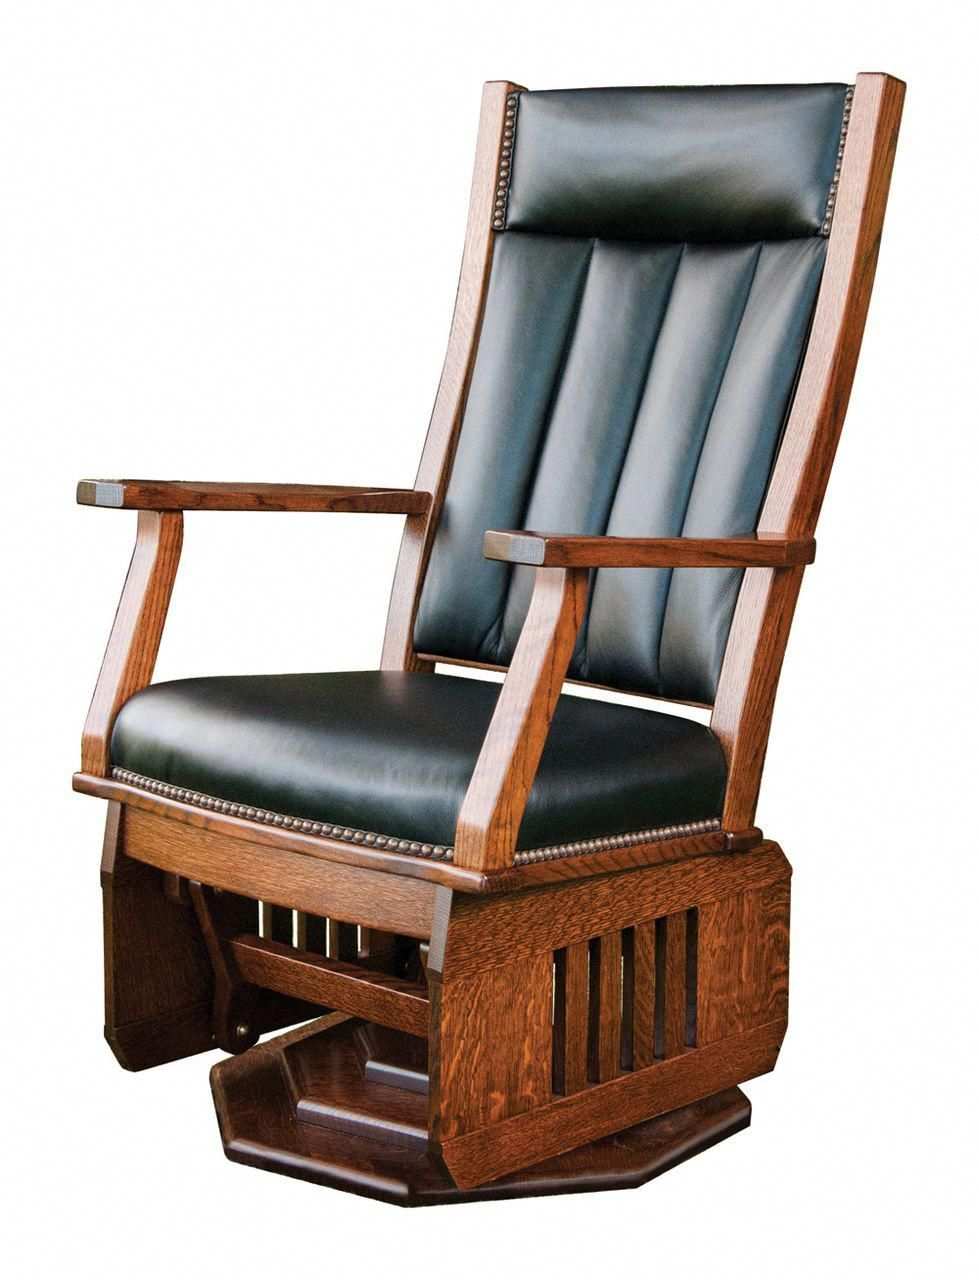 missionchair eames rocking chair gliders swivel glider amish rh pinterest com